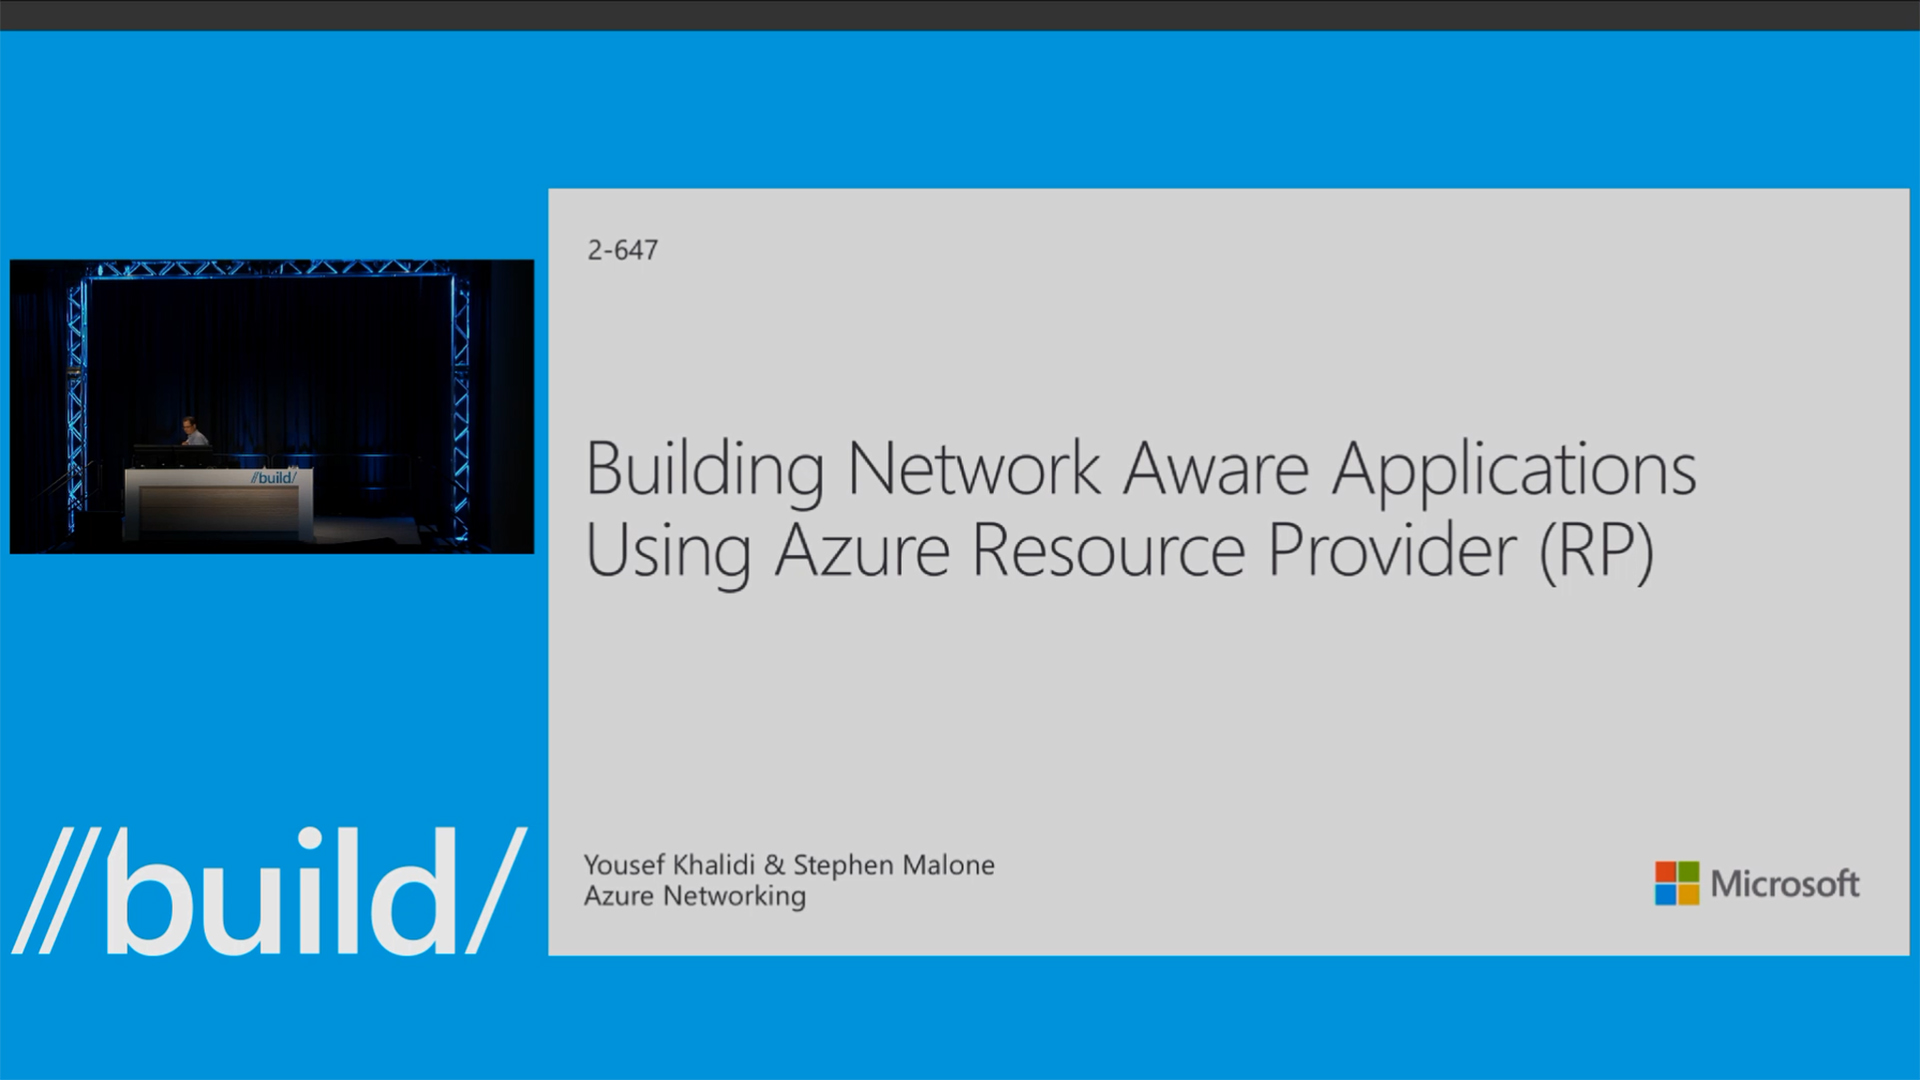 Building Network Aware Applications Using Azure Resource Provider (RP)